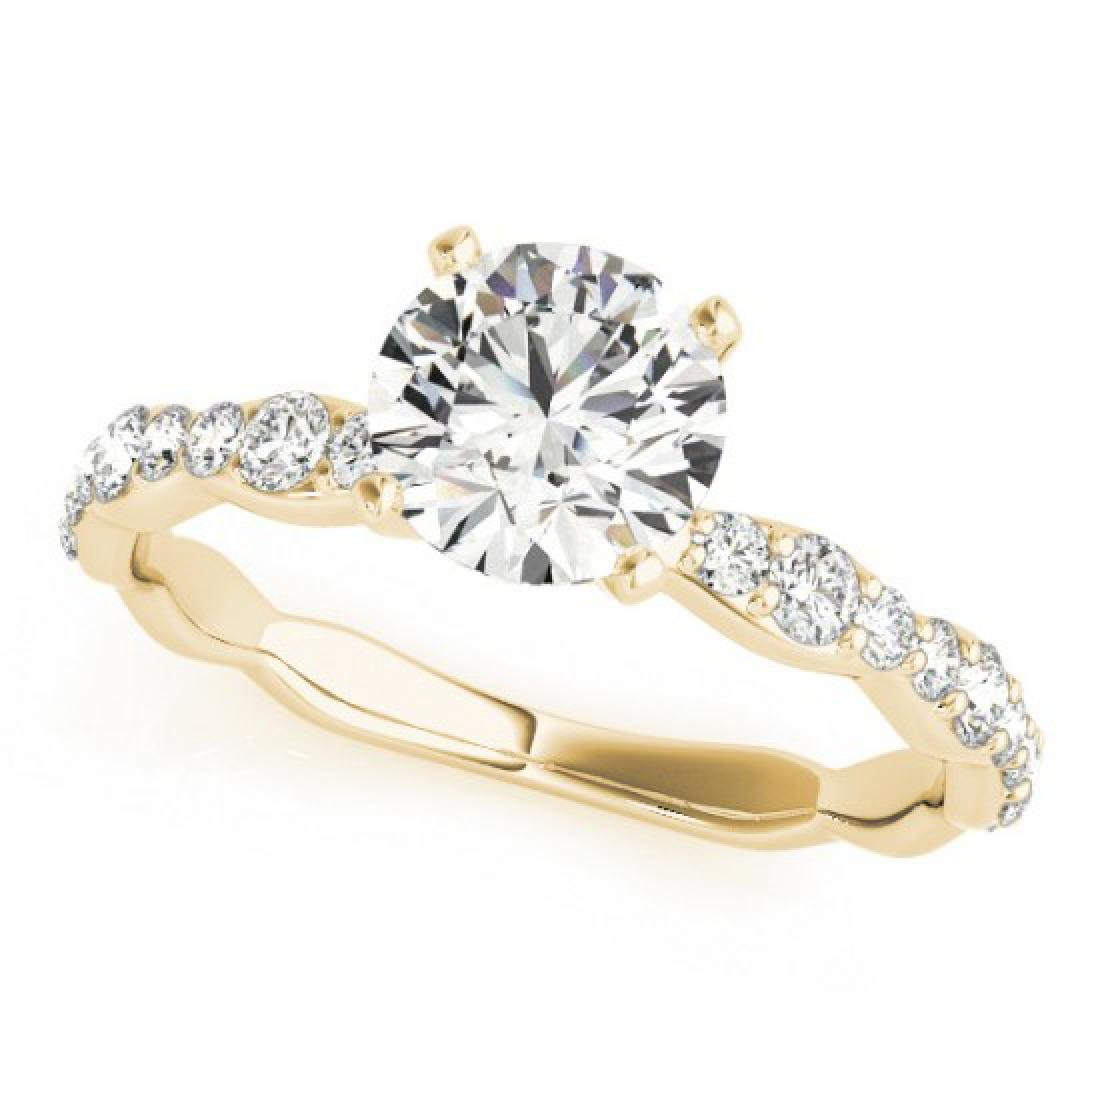 0.93 CTW Certified VS/SI Diamond Solitaire Ring 14K - 2